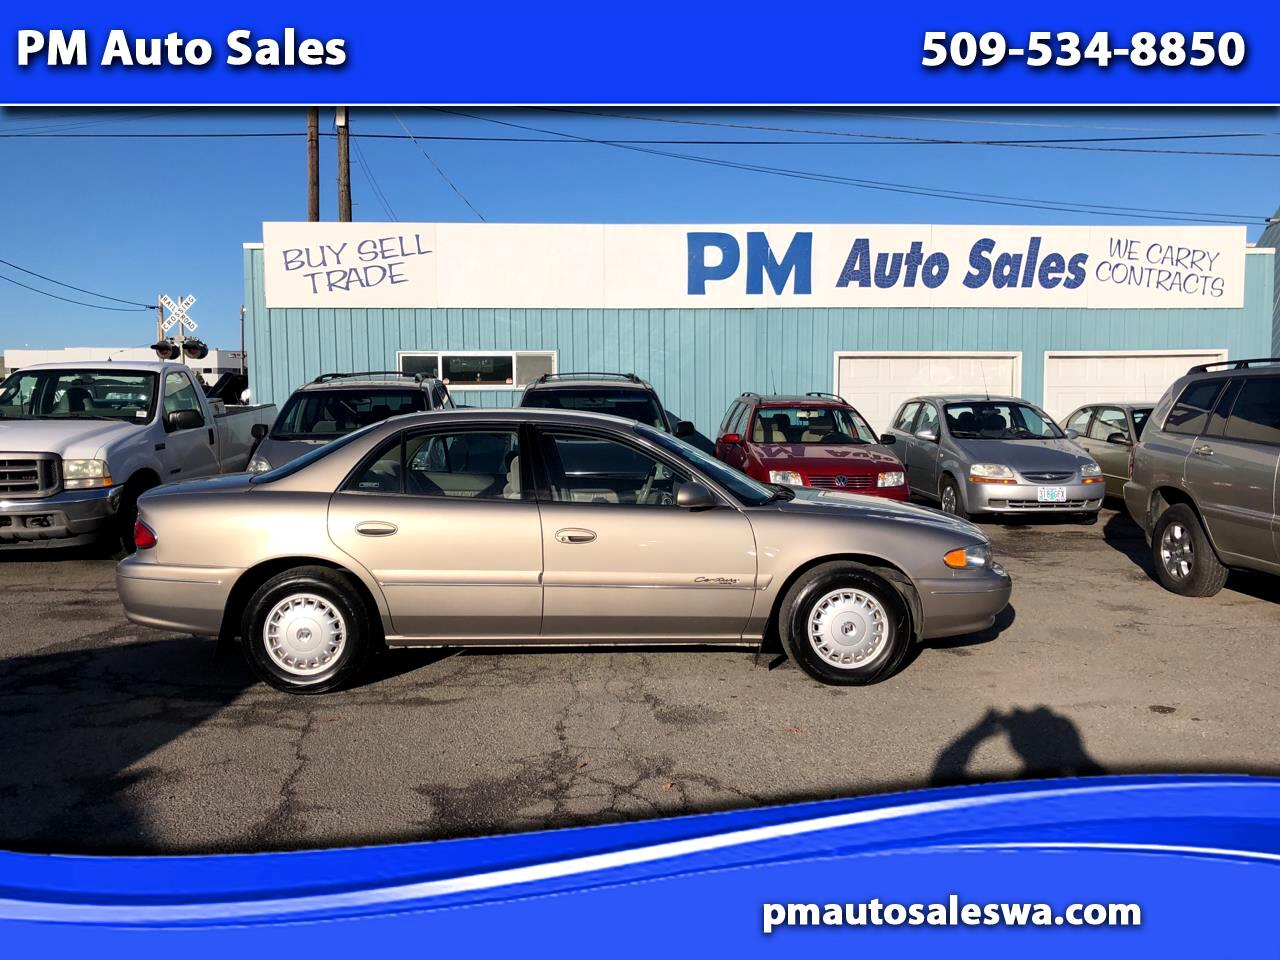 Used 2000 Buick Century Custom For Sale In Spokane Wa 99202 Pm Auto Sales